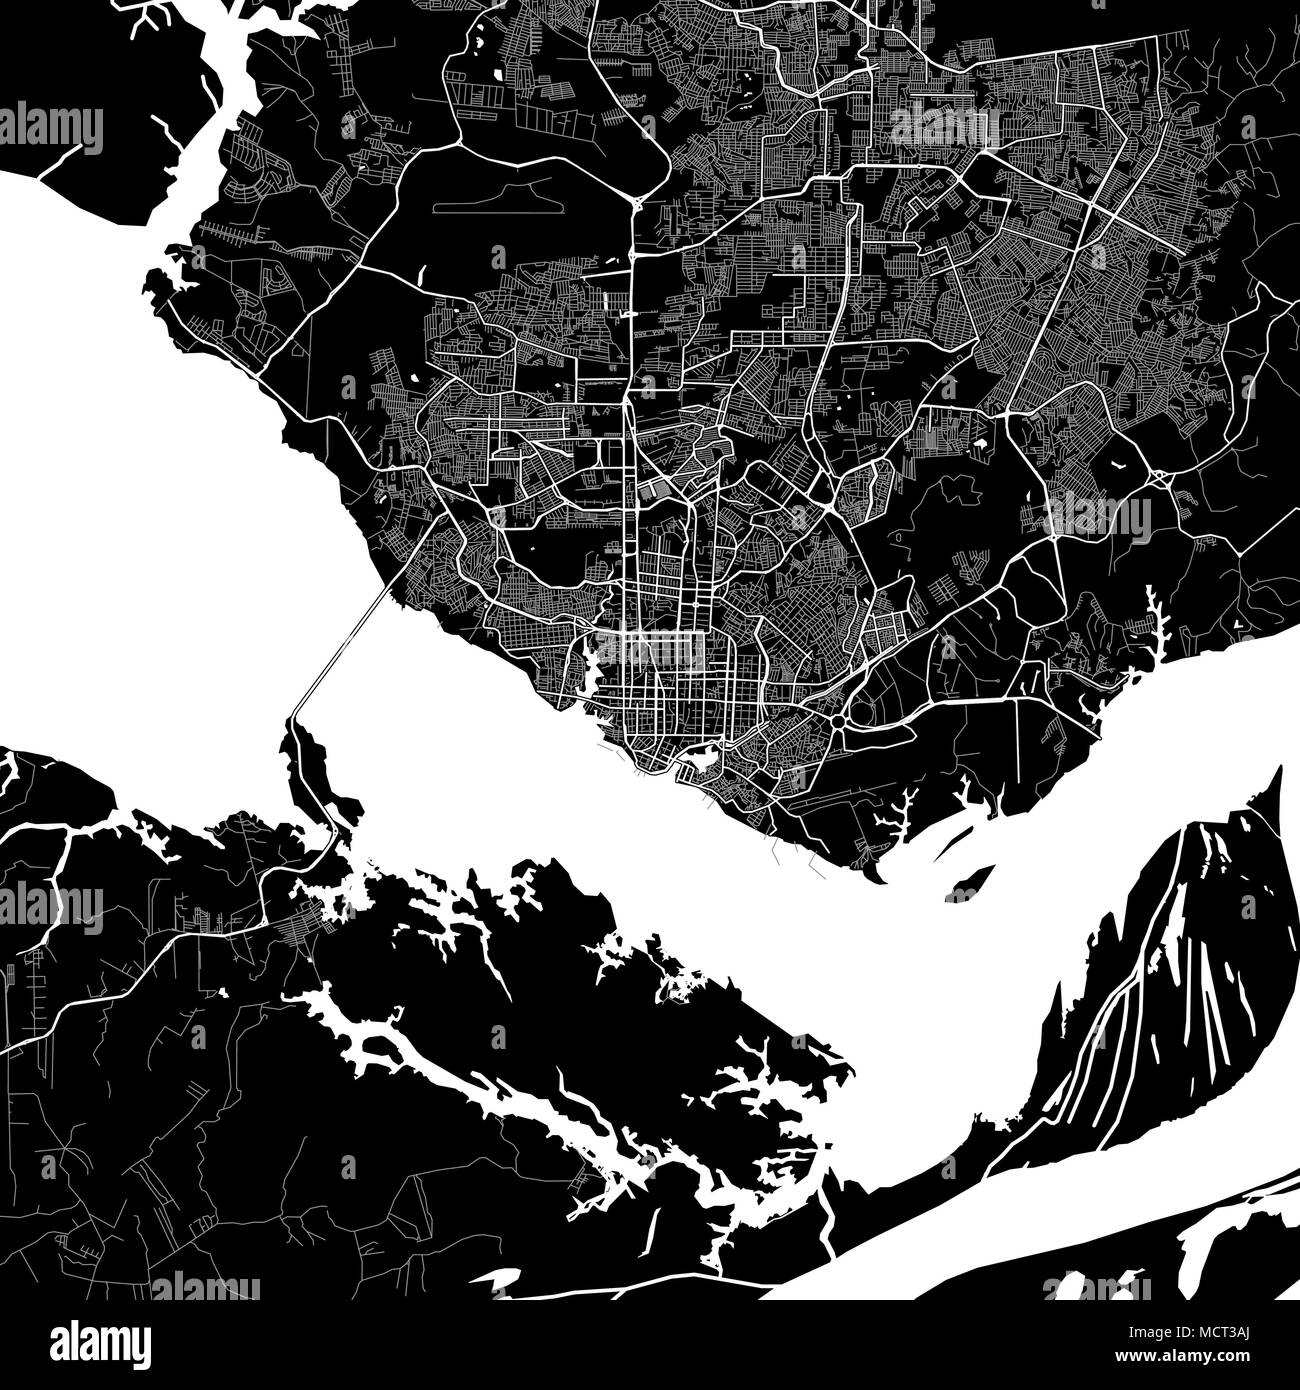 Area map of manaus brazil dark background version for infographic area map of manaus brazil dark background version for infographic and marketing projects this map of manaus amazonas contains typical landmarks gumiabroncs Images